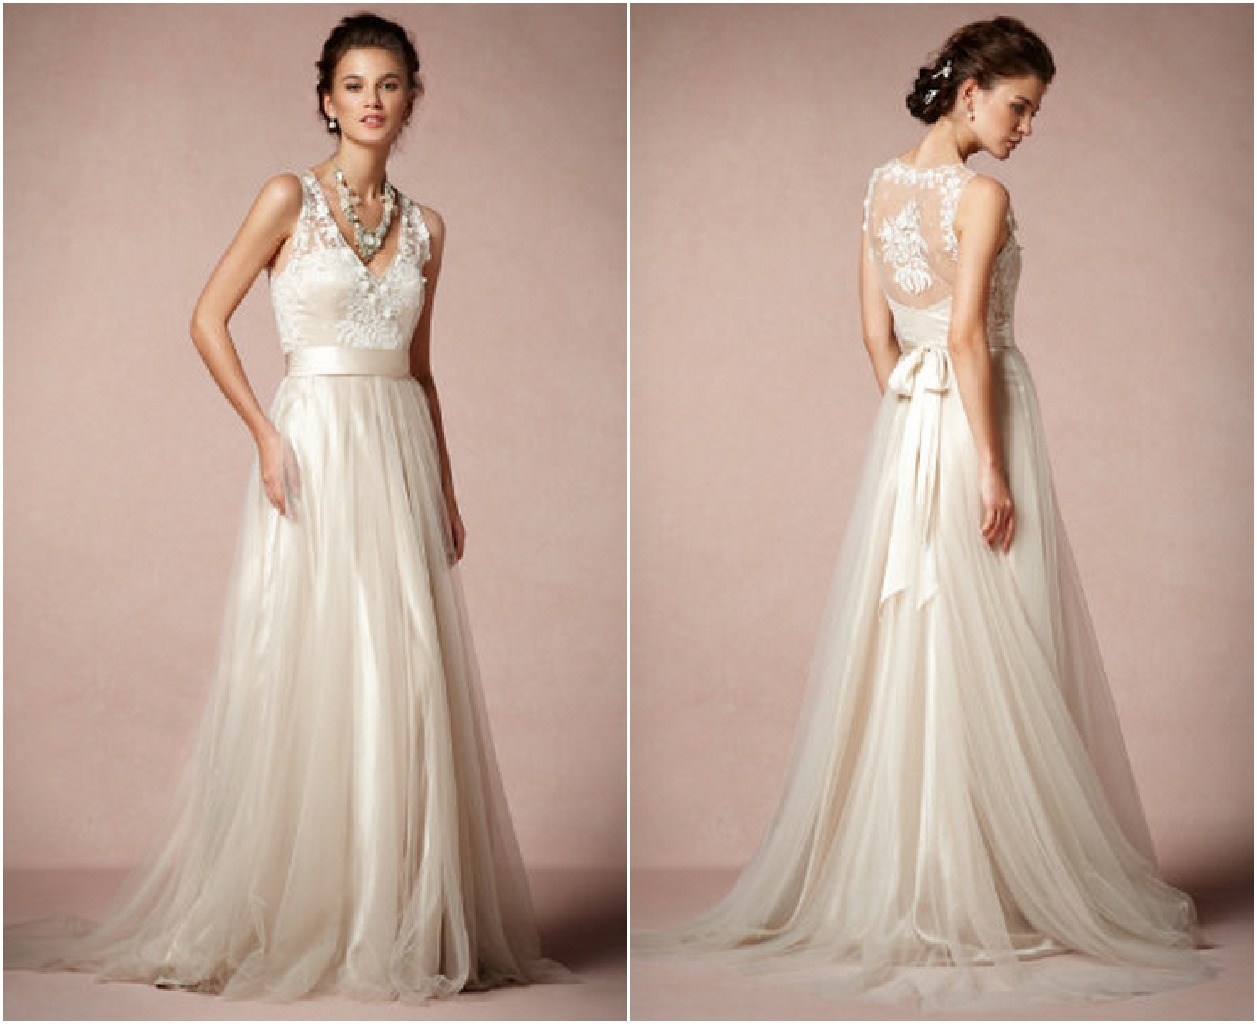 Amore wedding dresses bridesmaid dresses uk www discount wedding dresses 88 ombrellifo Image collections